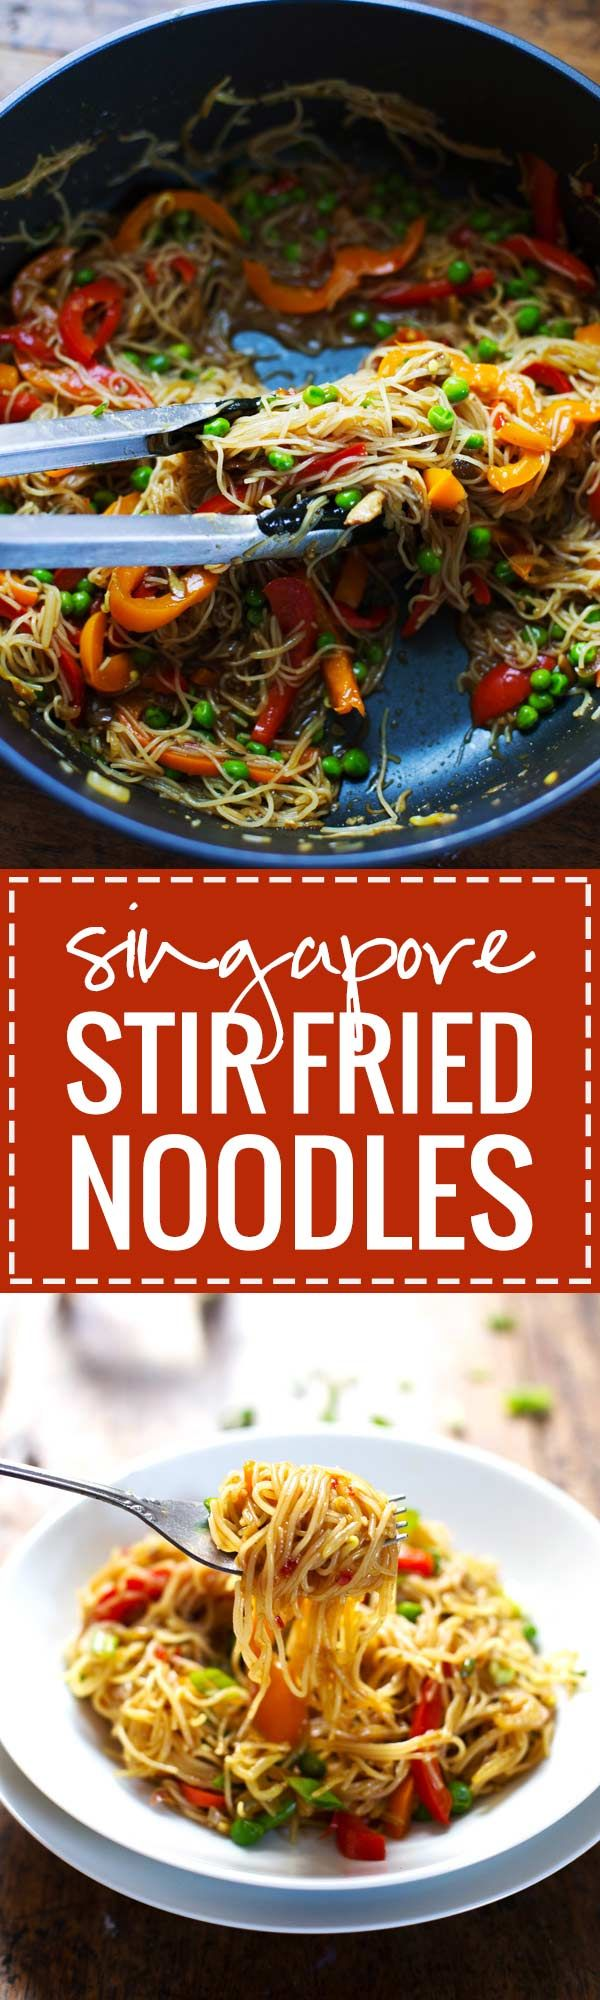 Stir Fried Singapore Noodles with a garlic ginger soy sauce. fresh, simple, delish.   pinchofyum.com